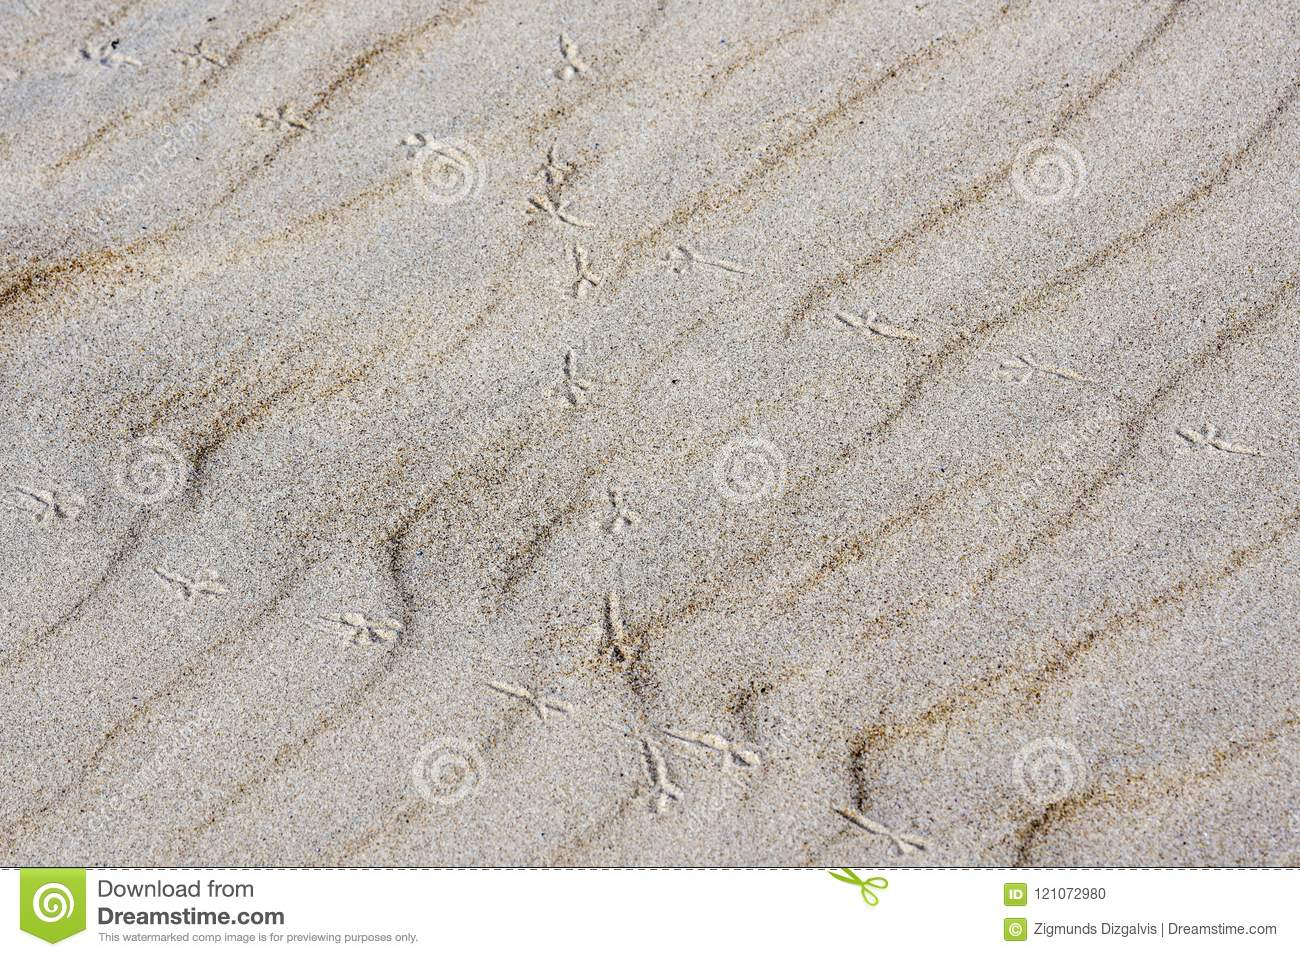 Background of sand, wind formed relief, bird footprints